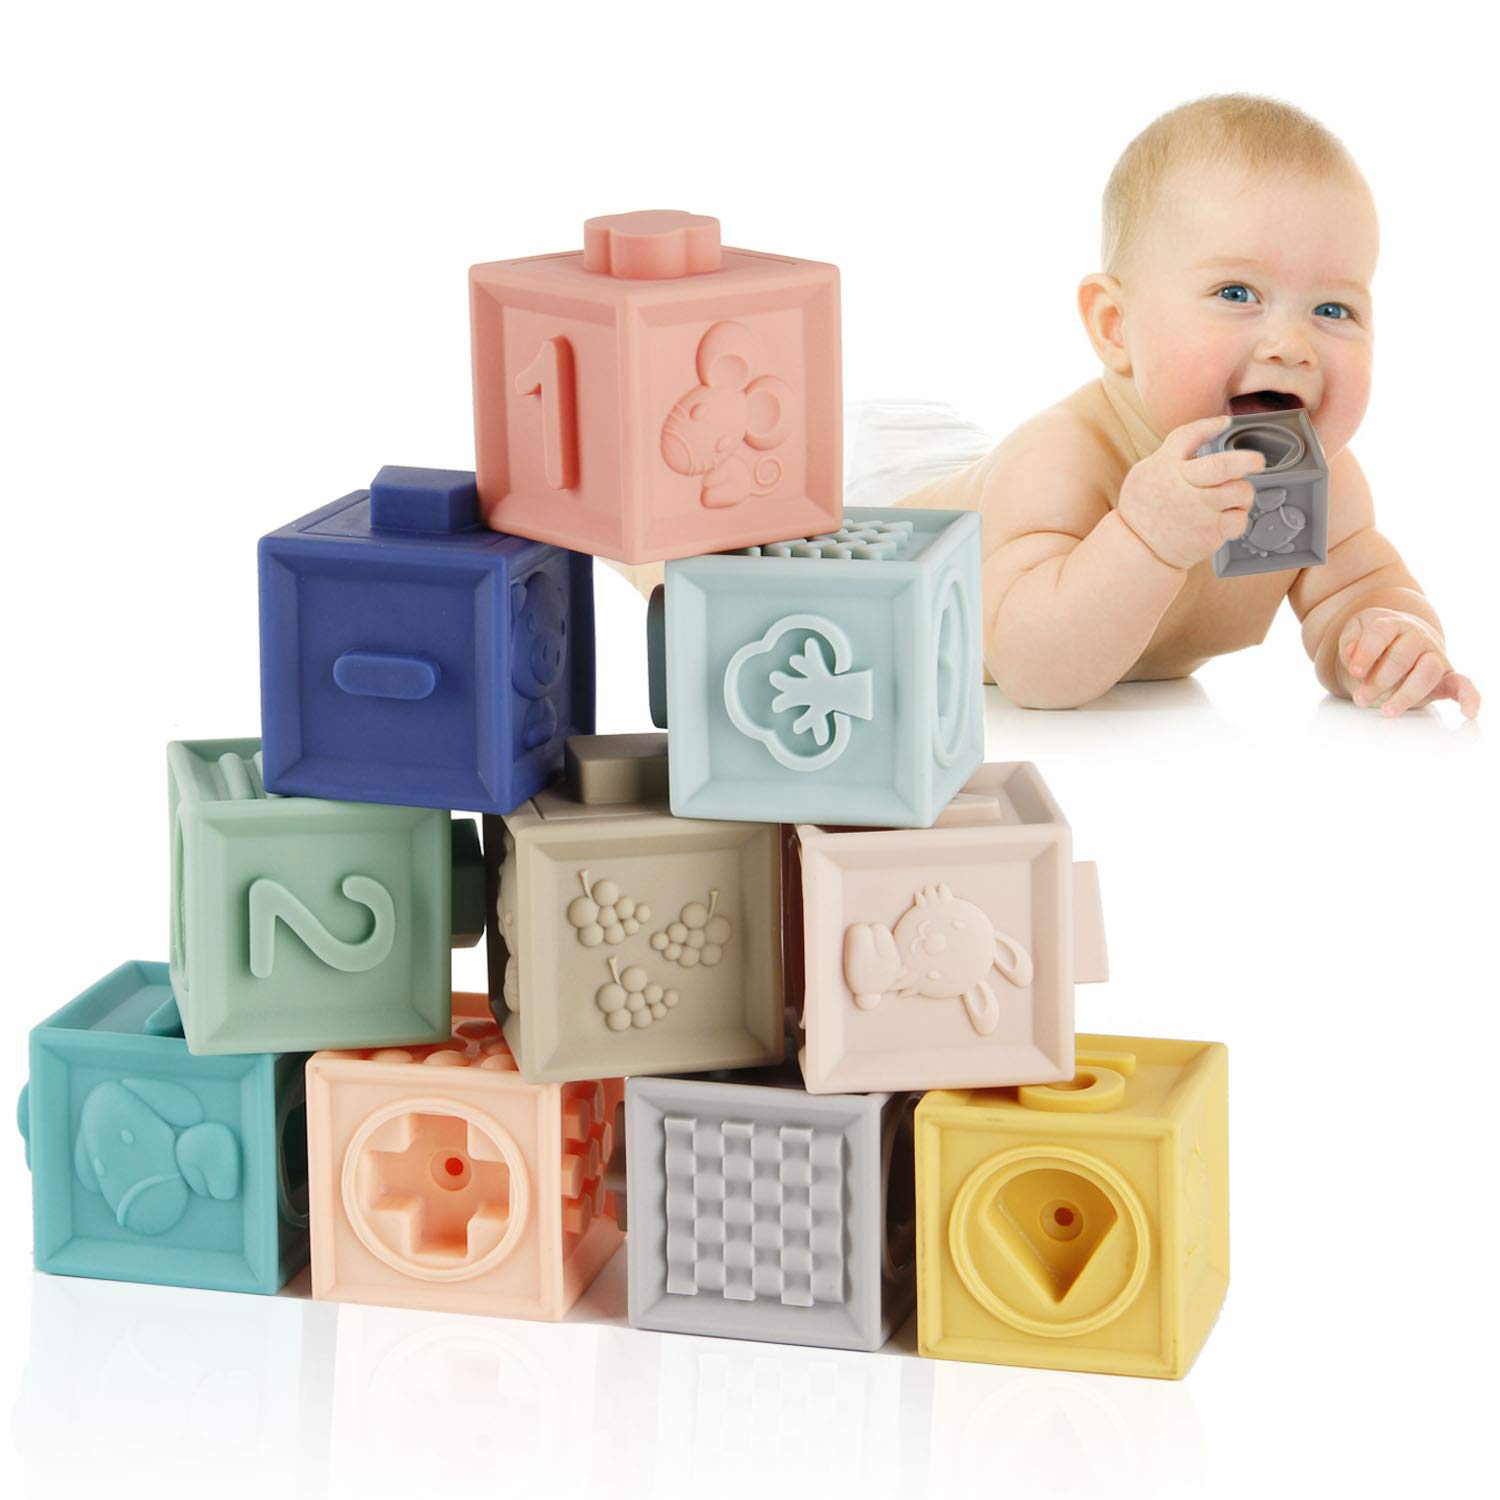 Mini Tudou Baby Blocks Soft Building Blocks Baby Toys Teethers Toy Educational Squeeze Play with Numbers Animals Shapes Textures 6 Months and Up 12PCS